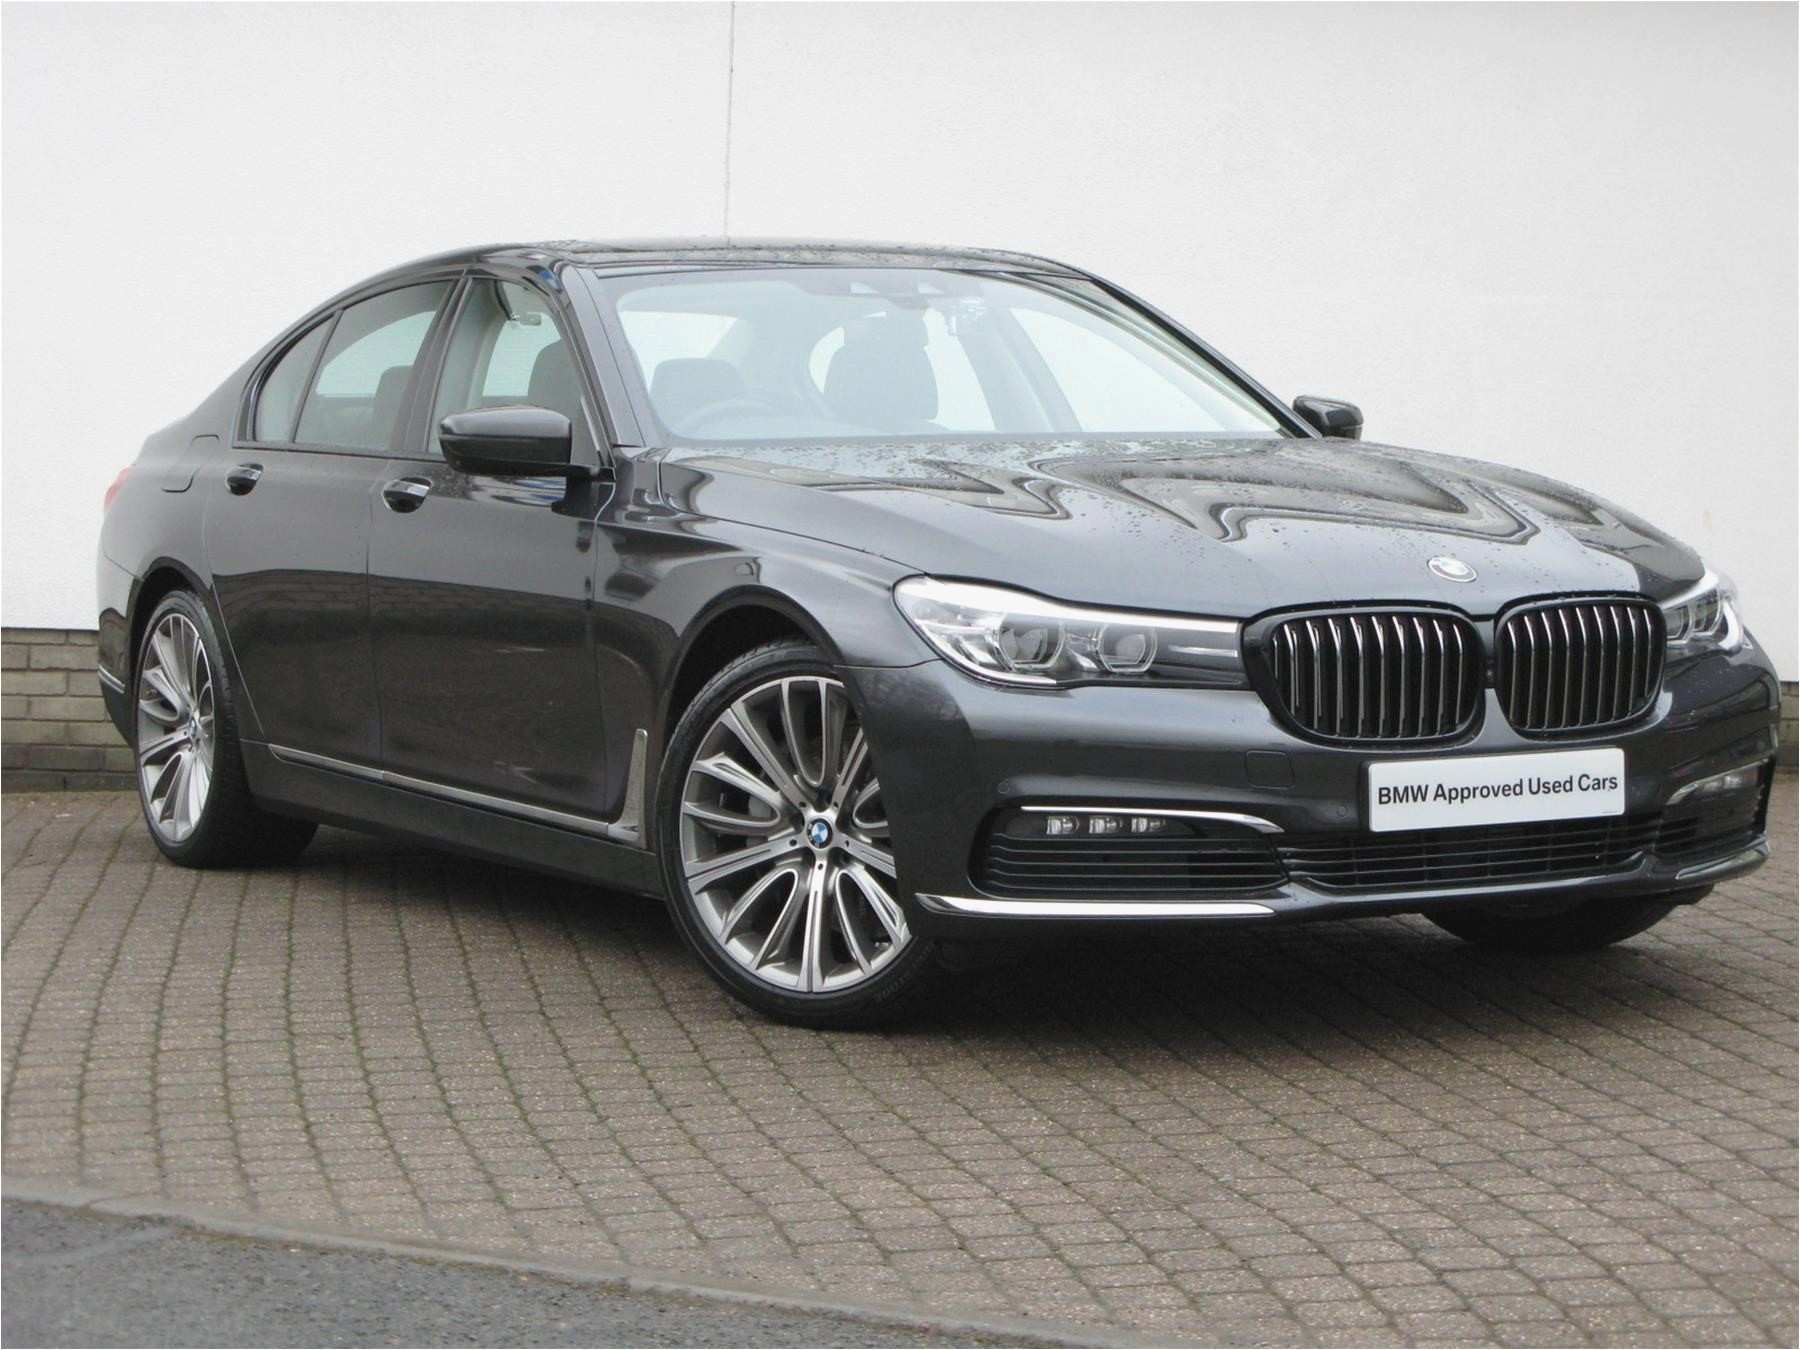 Pictures for Sale Inspirational Bmw M7 for Sale Latest Used 2017 Bmw 7 Series G11 740d Xdrive Saloon